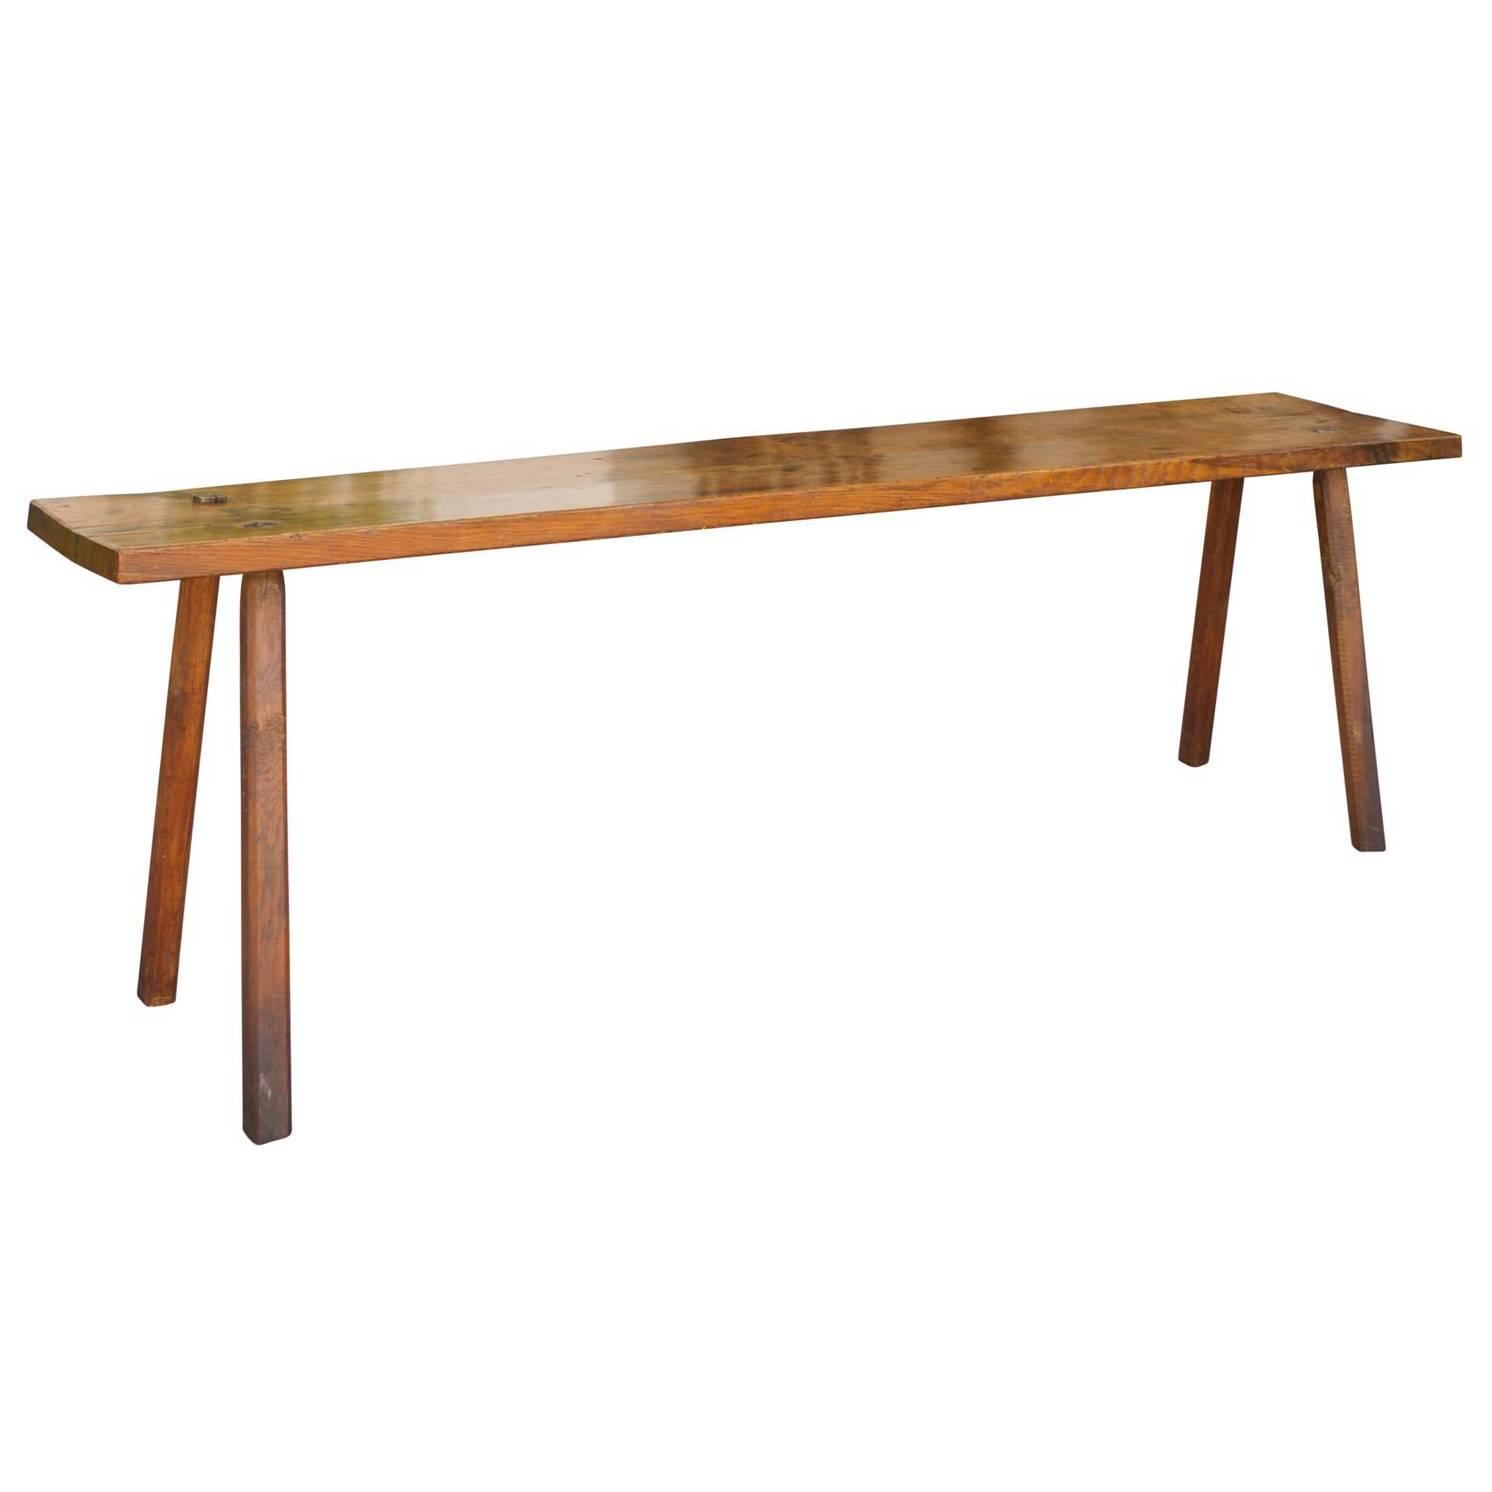 Long Narrow Table at 1stdibs : abp101420155341111Customorgz from www.1stdibs.com size 1492 x 1492 jpeg 38kB